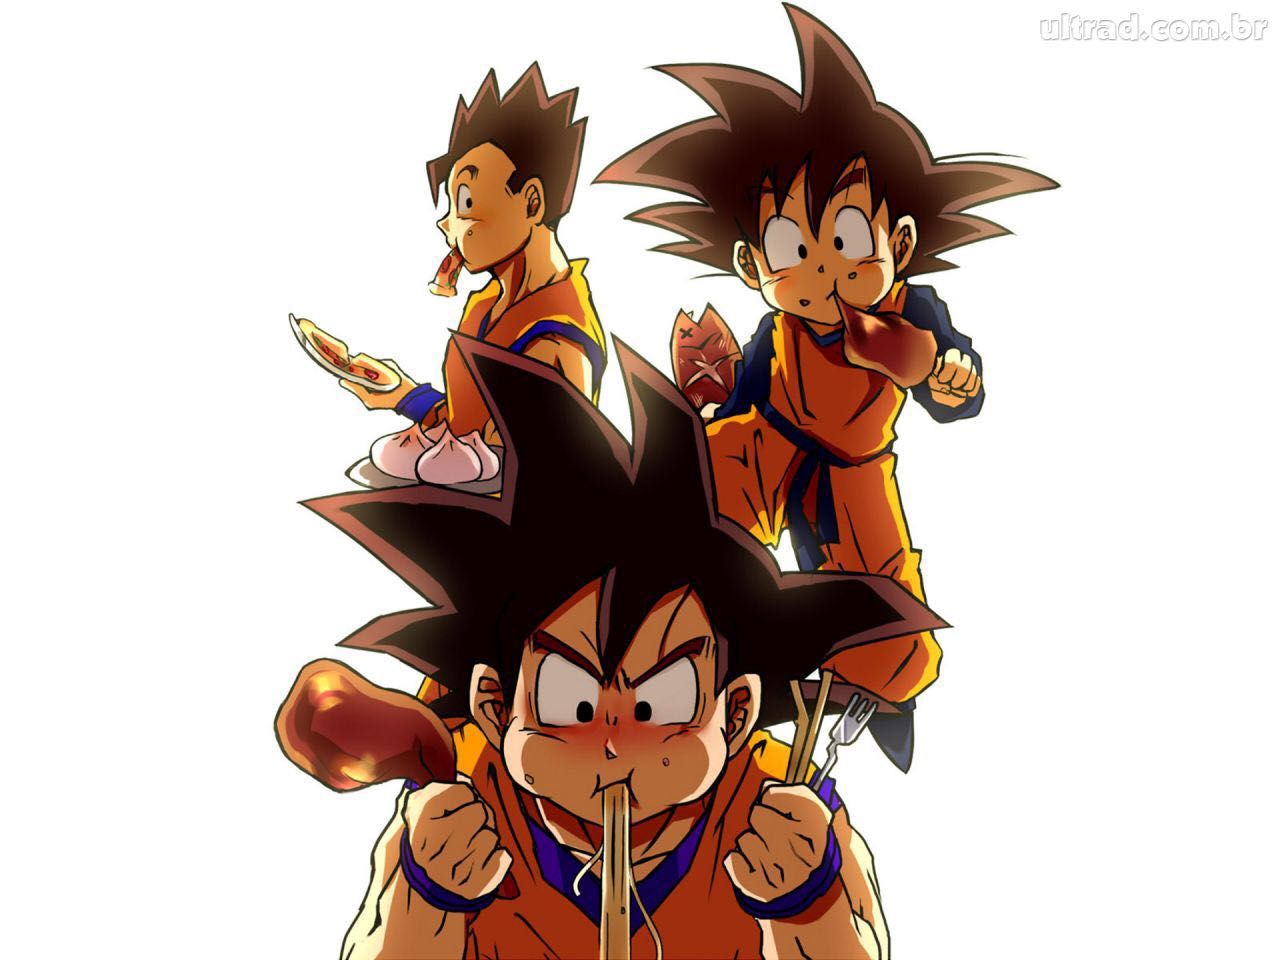 Lost Hearts Goku X Reader Friends In 2021 Anime Dragon Ball Dragon Ball Super Manga Dragon Ball Wallpapers